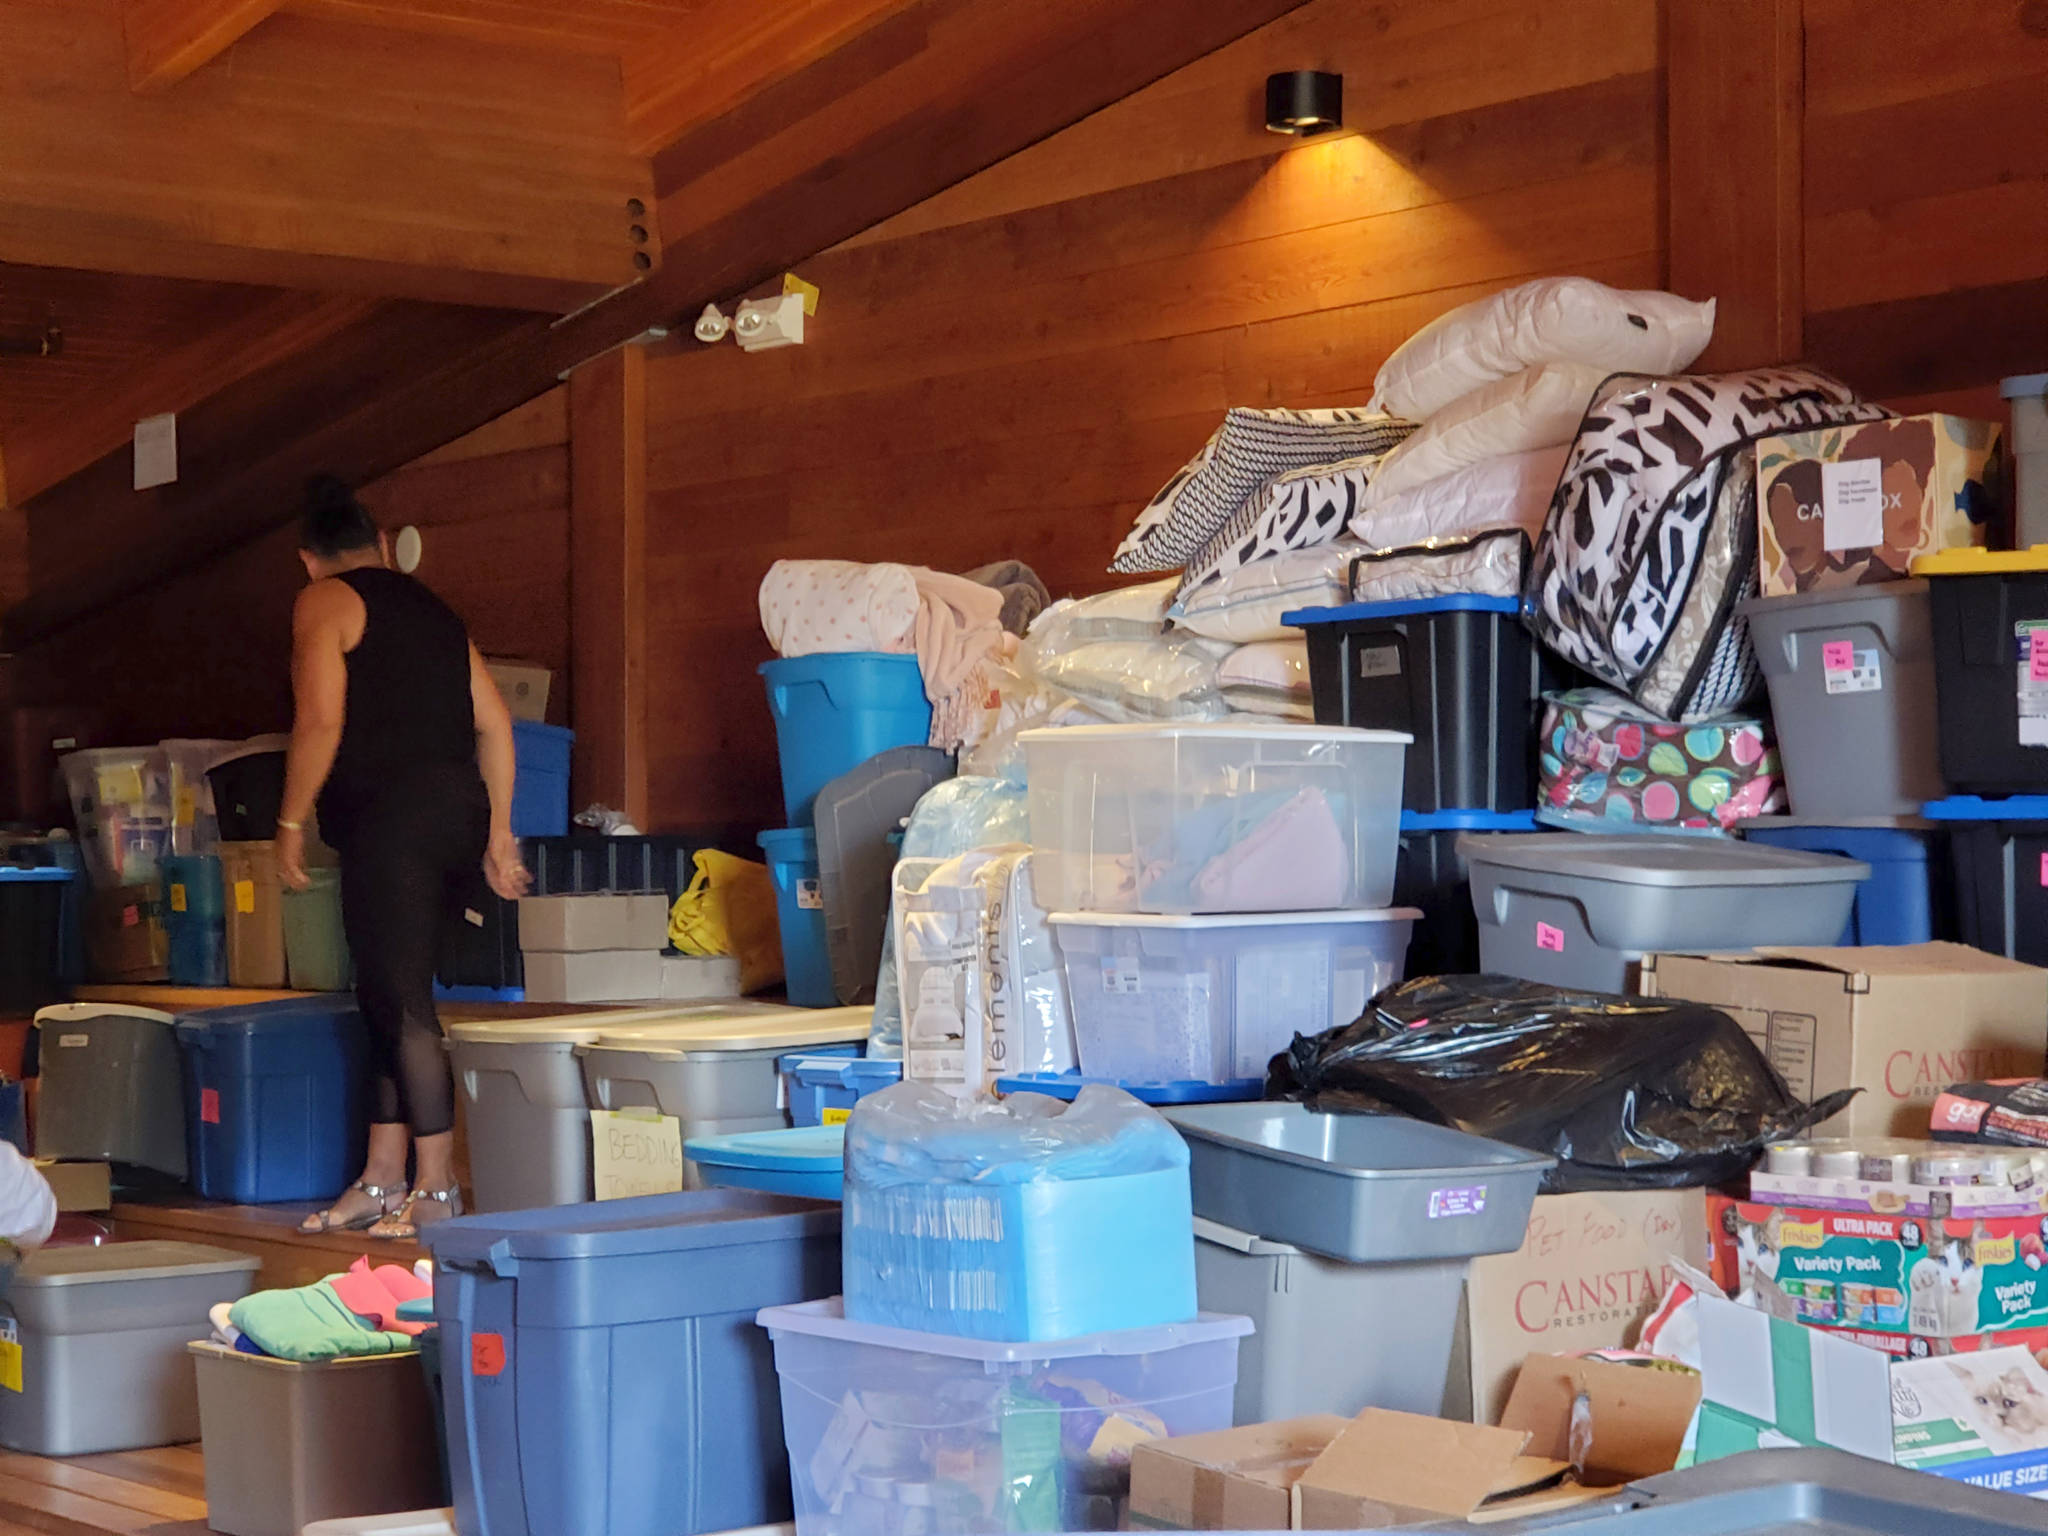 The Kwantlen and Katzie First Nation were at the Kwantlen Cultural Centre on Monday, July 5, 2021 to help organize supplies for those affected by the Lytton wildfire. (Cecelia Reekie/Special to Langley Advance Times)